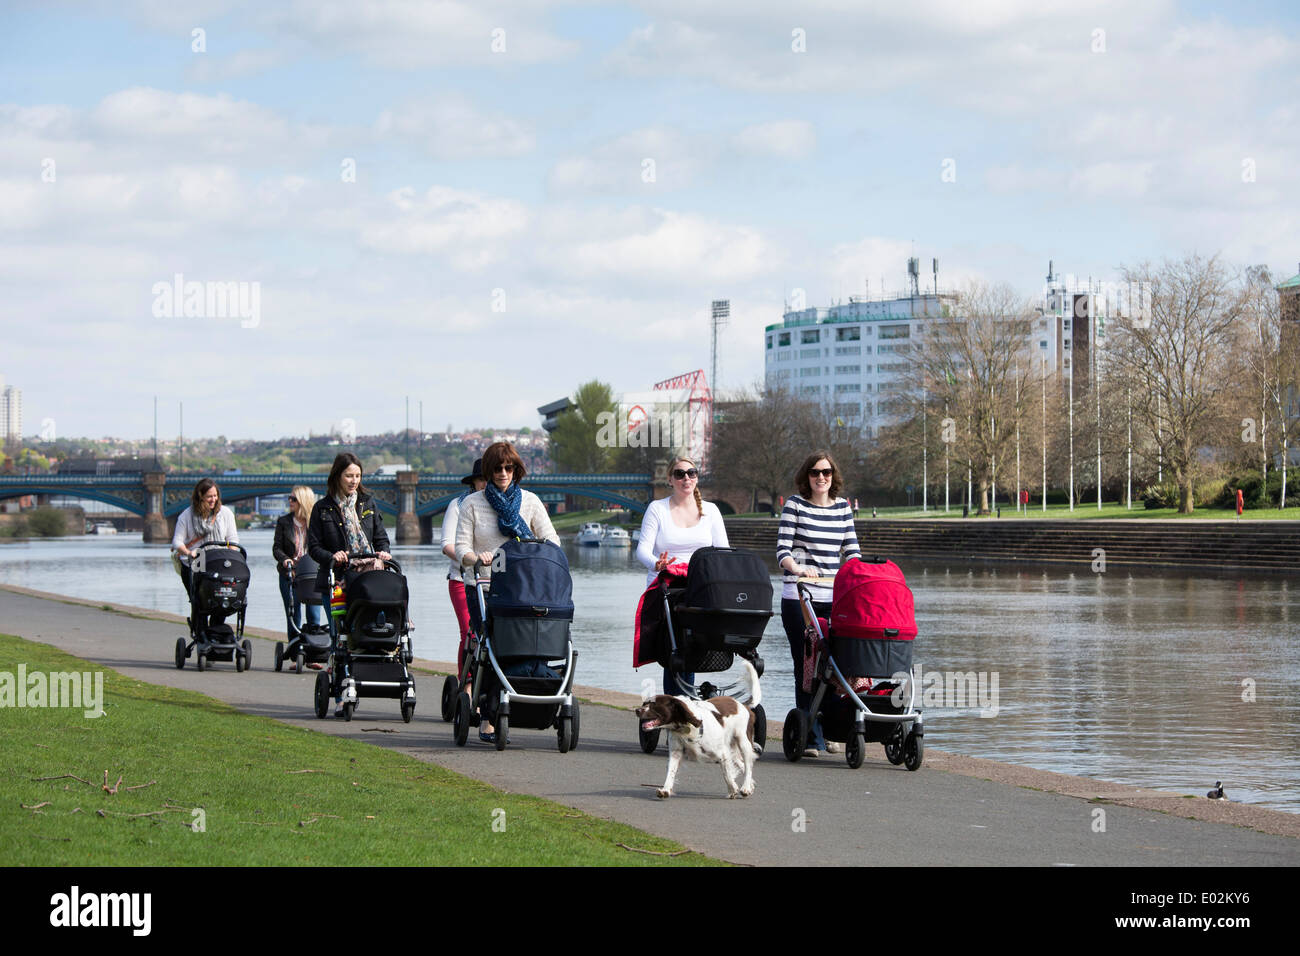 A group of mums who are friends, walking with their pushchairs along the embankment next to the River Trent in Nottingham, UK. - Stock Image